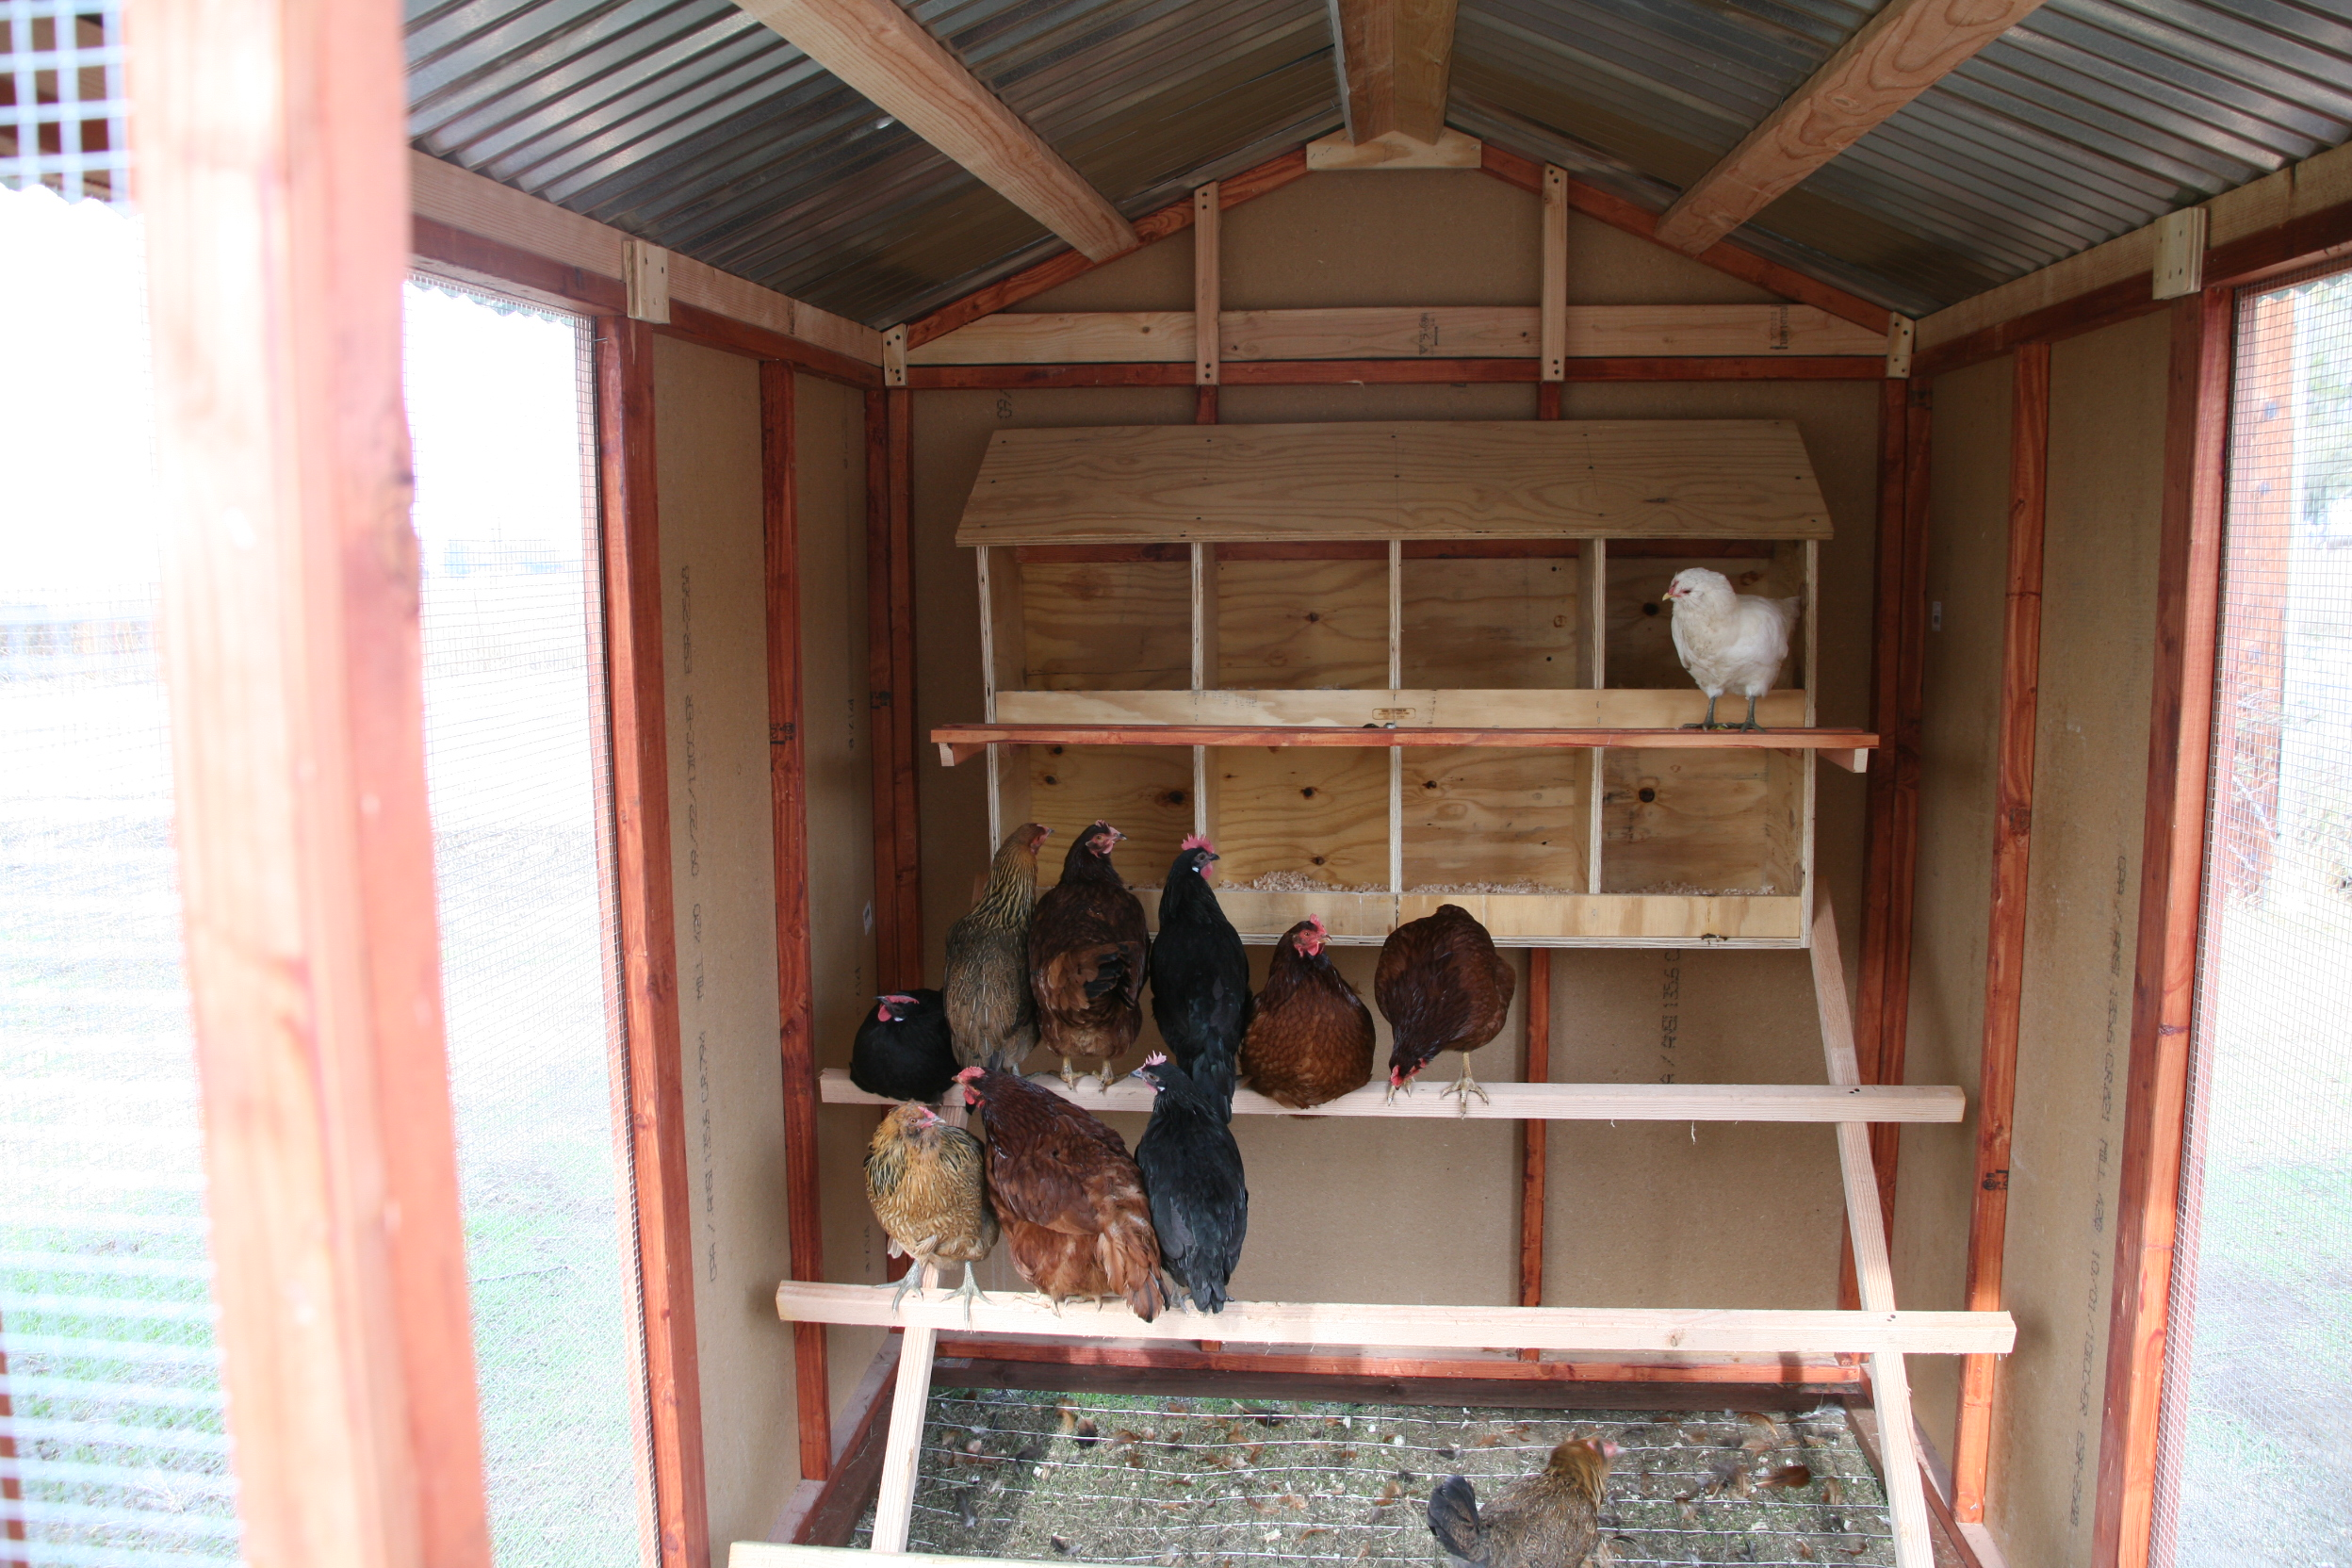 backyard chicken coop - Chicken Coop Design Ideas